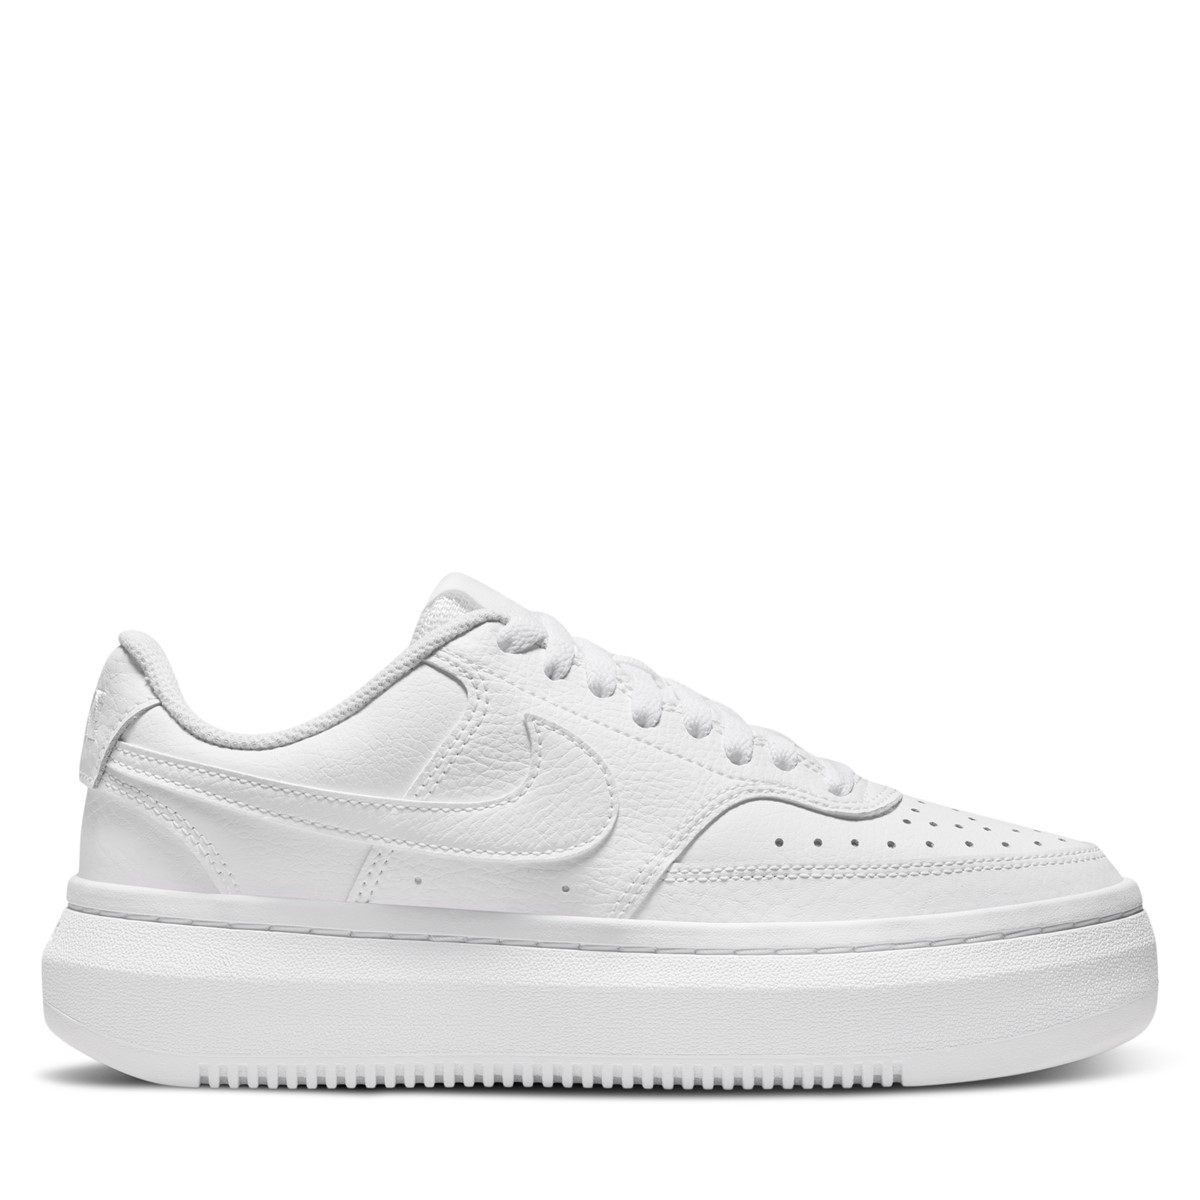 Women's Court Vision Alta Sneakers in White